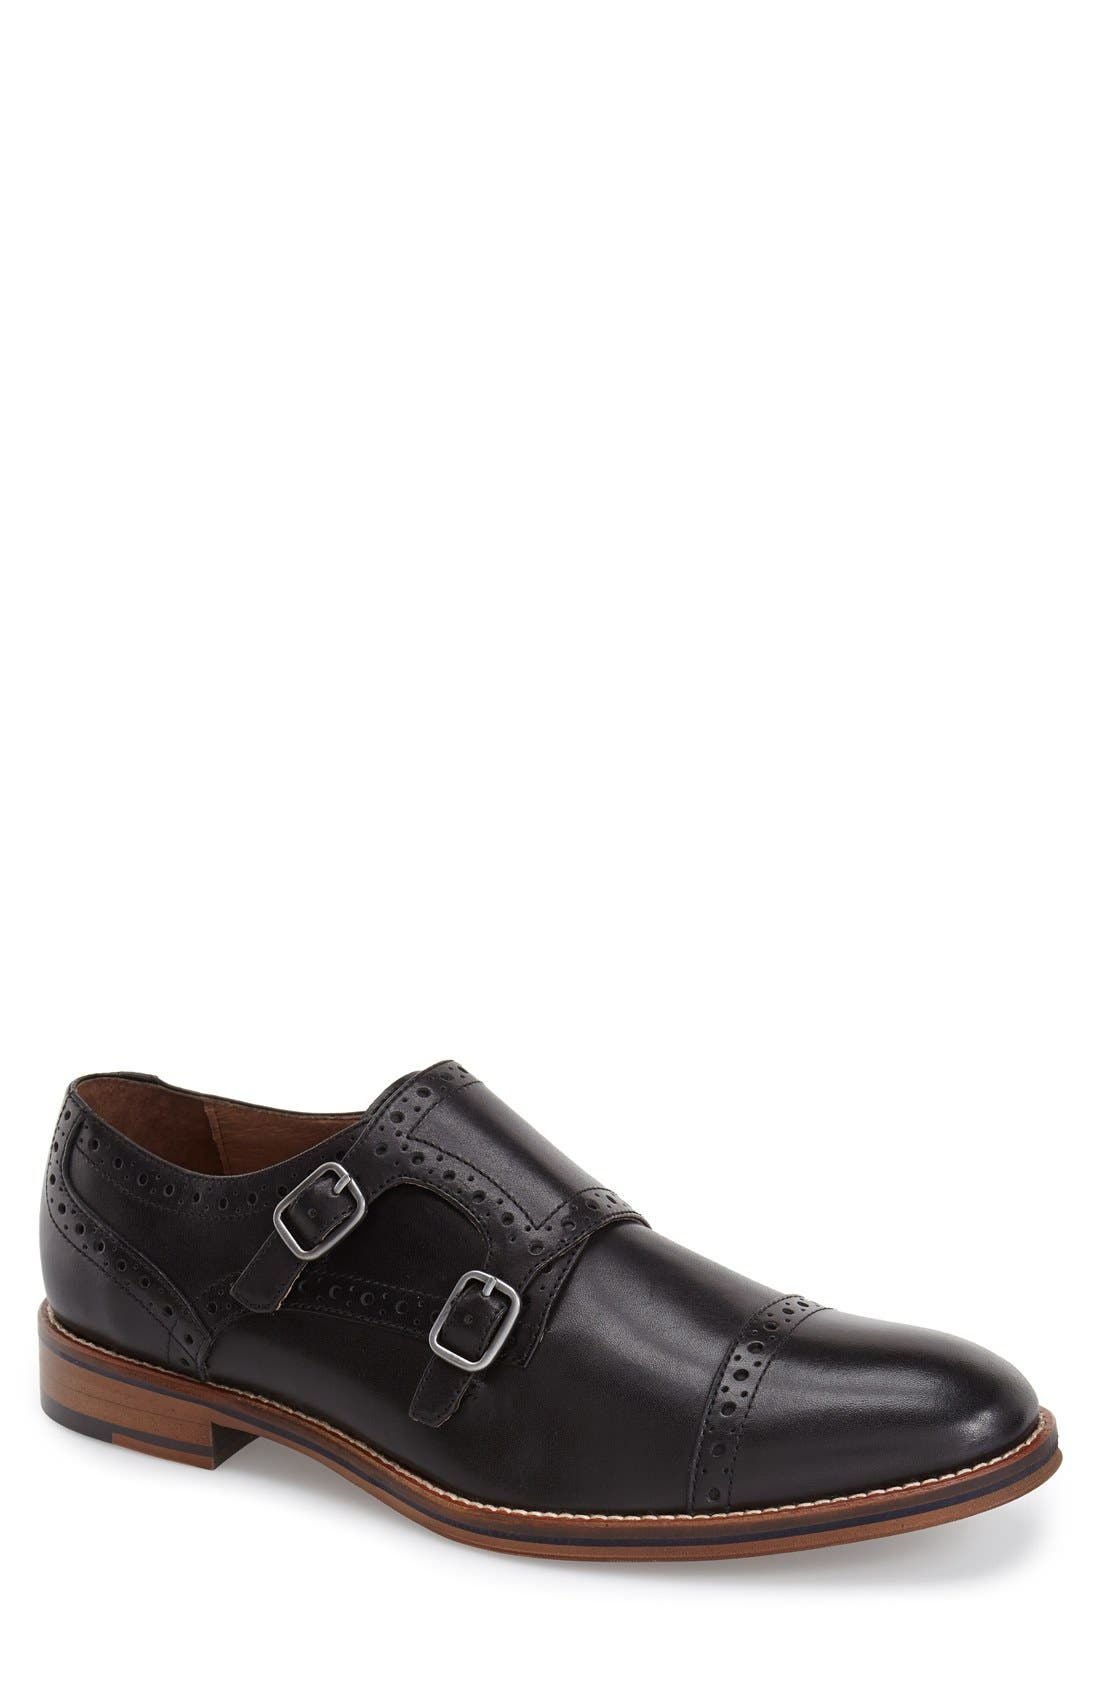 JOHNSTON & MURPHY 'Conard' Double Monk Strap Slip-On